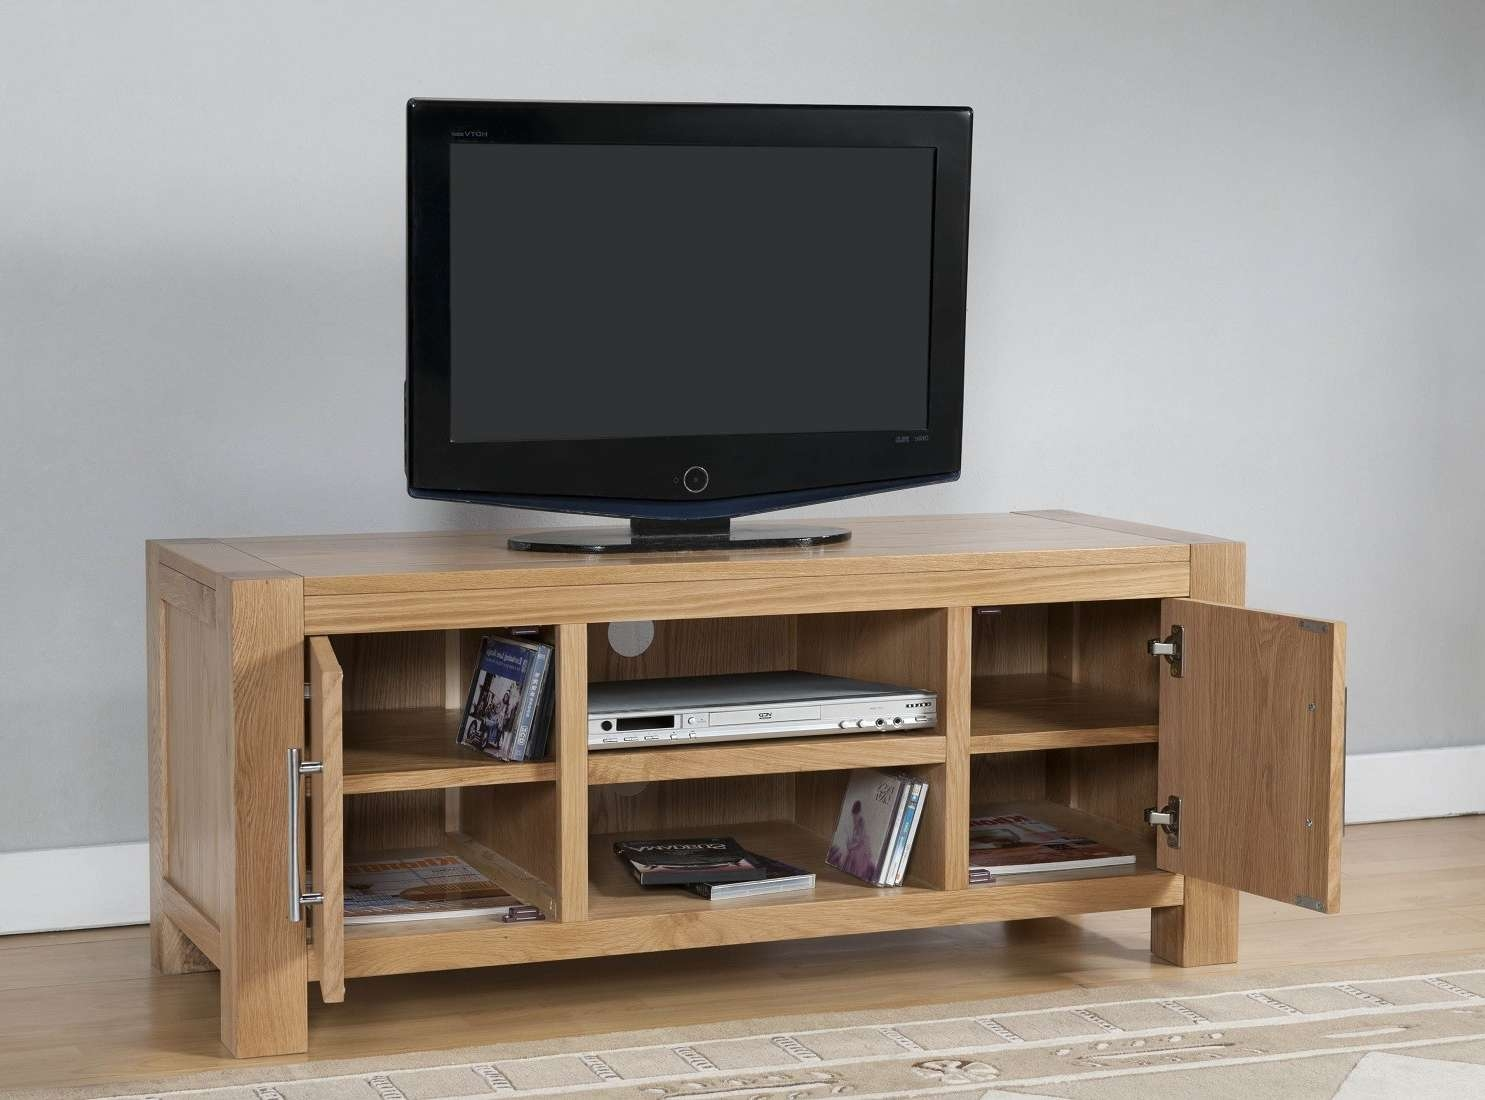 Aylesbury Contemporary Light Oak Large Tv Unit | Oak Furniture Uk Inside Contemporary Oak Tv Cabinets (View 2 of 20)